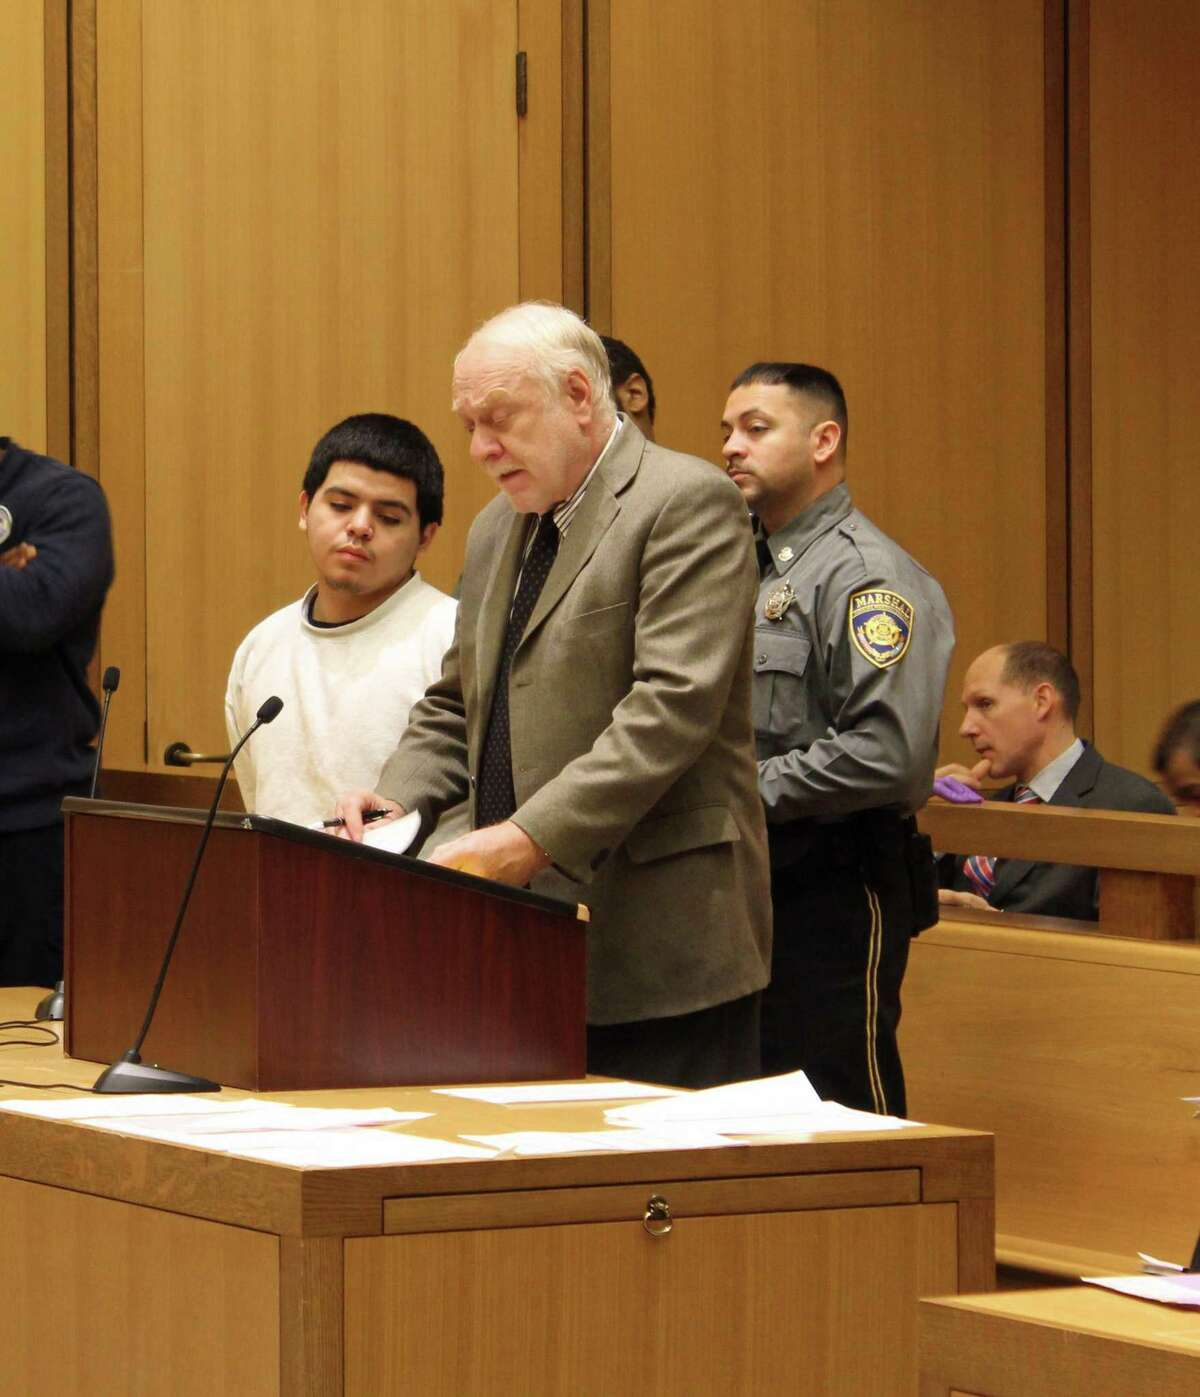 Jerry Diaz, 18, was arraigned at Stamford Supreme Court Nov. 19 with a number of charges including two counts of second-degree manslaughter.